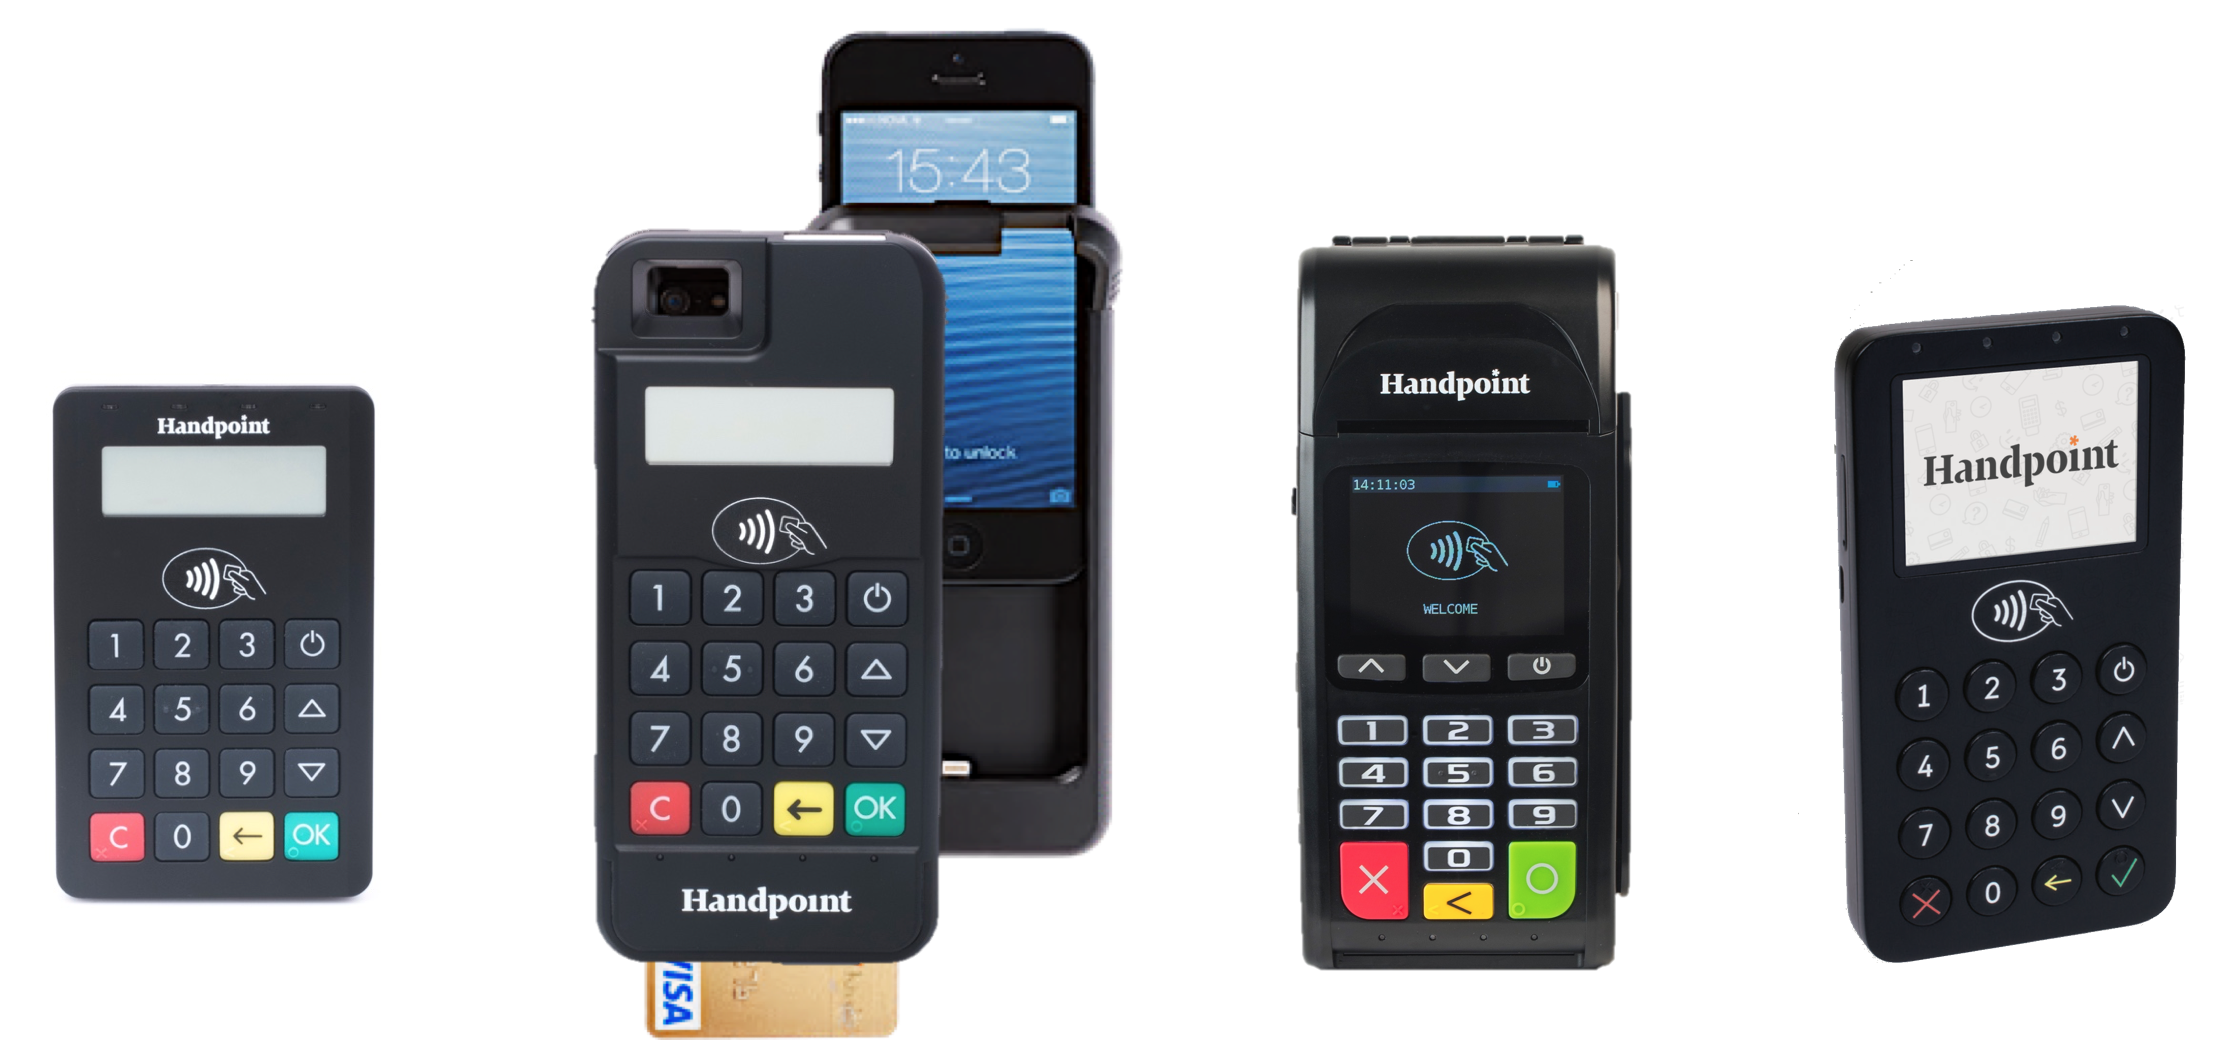 Handpoint Mobile Terminals